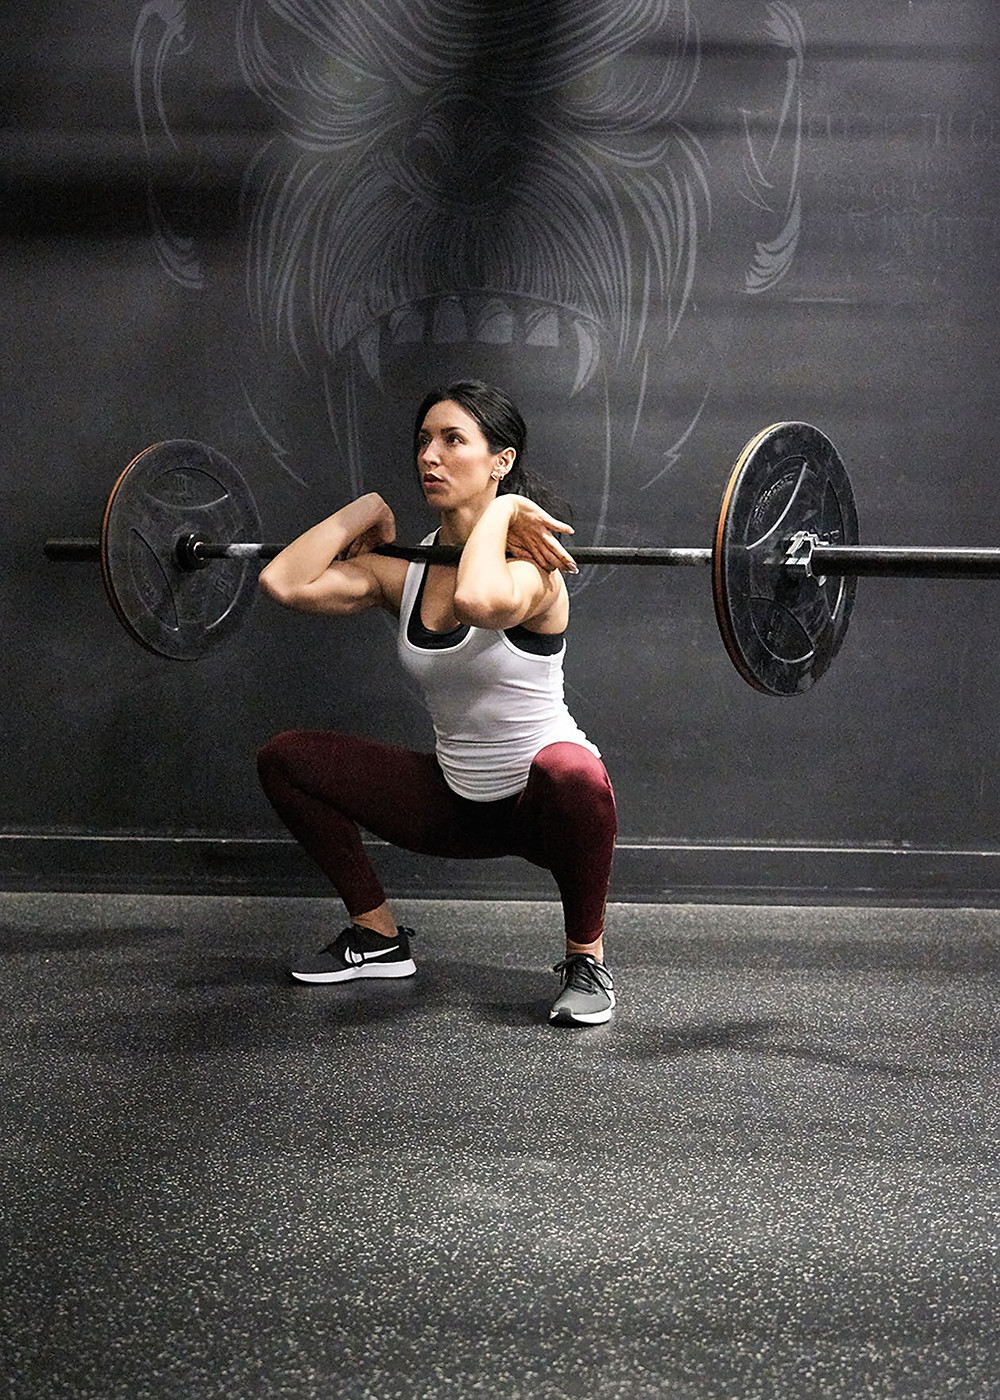 From Onnit (also, it is freaking HARD to find a picture of a women doing a PROPER squat on the internet)